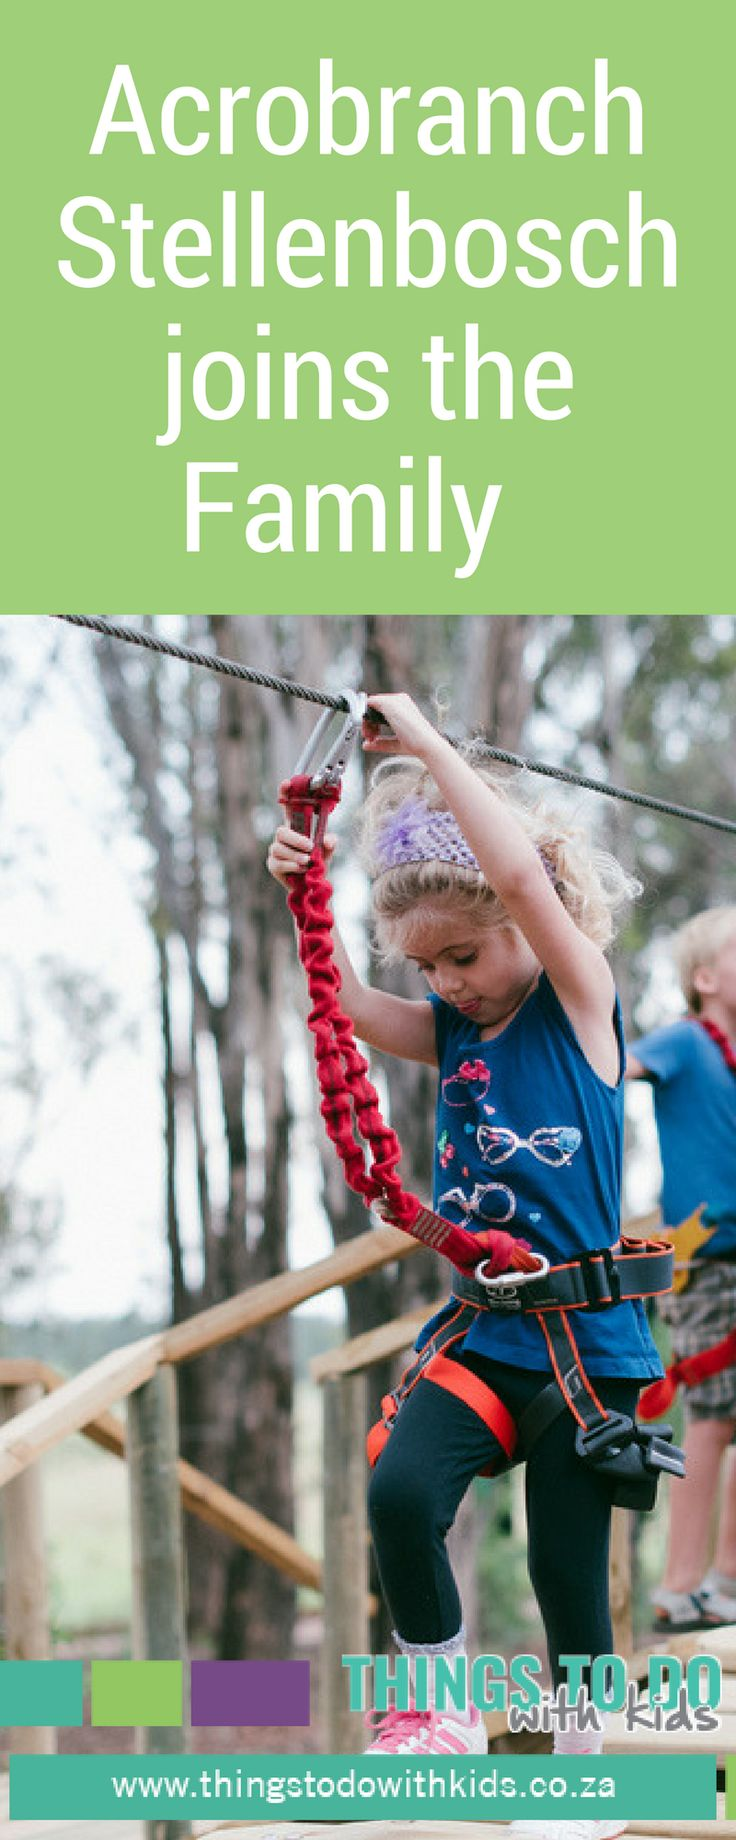 Outdoor Family Activity | Things to do with Kids in Stellenbosch | Gross Motor Skills Development | Activities & Excursions | Kids Party Idea | Kids Party Venue